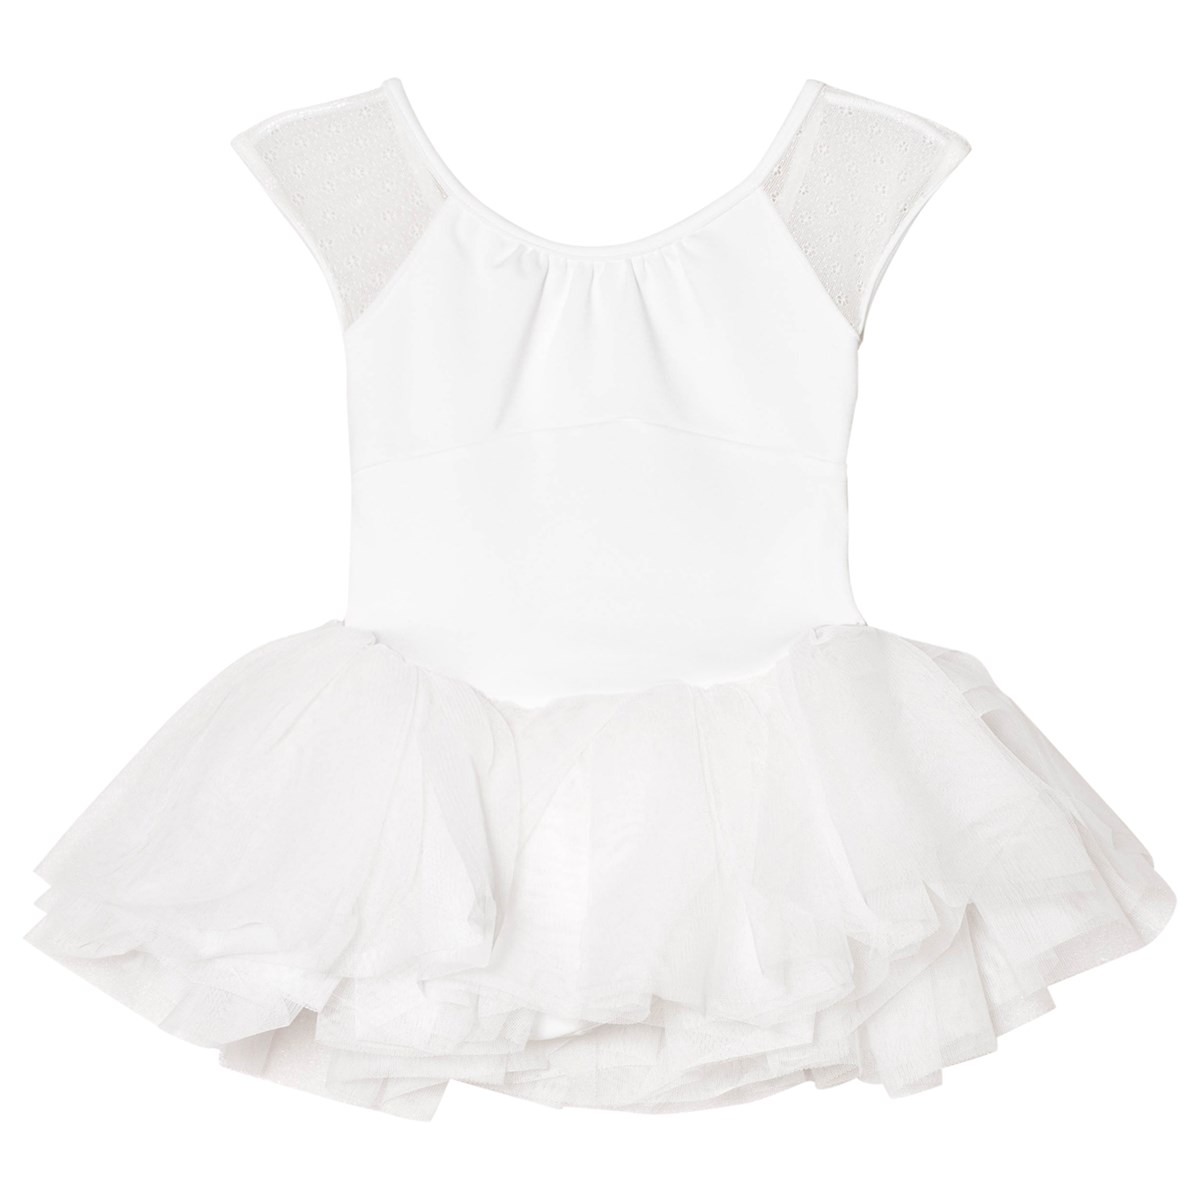 96f6deb322 Bloch White Jemima Daisy Mesh Bow Back Tutu Dress | AlexandAlexa